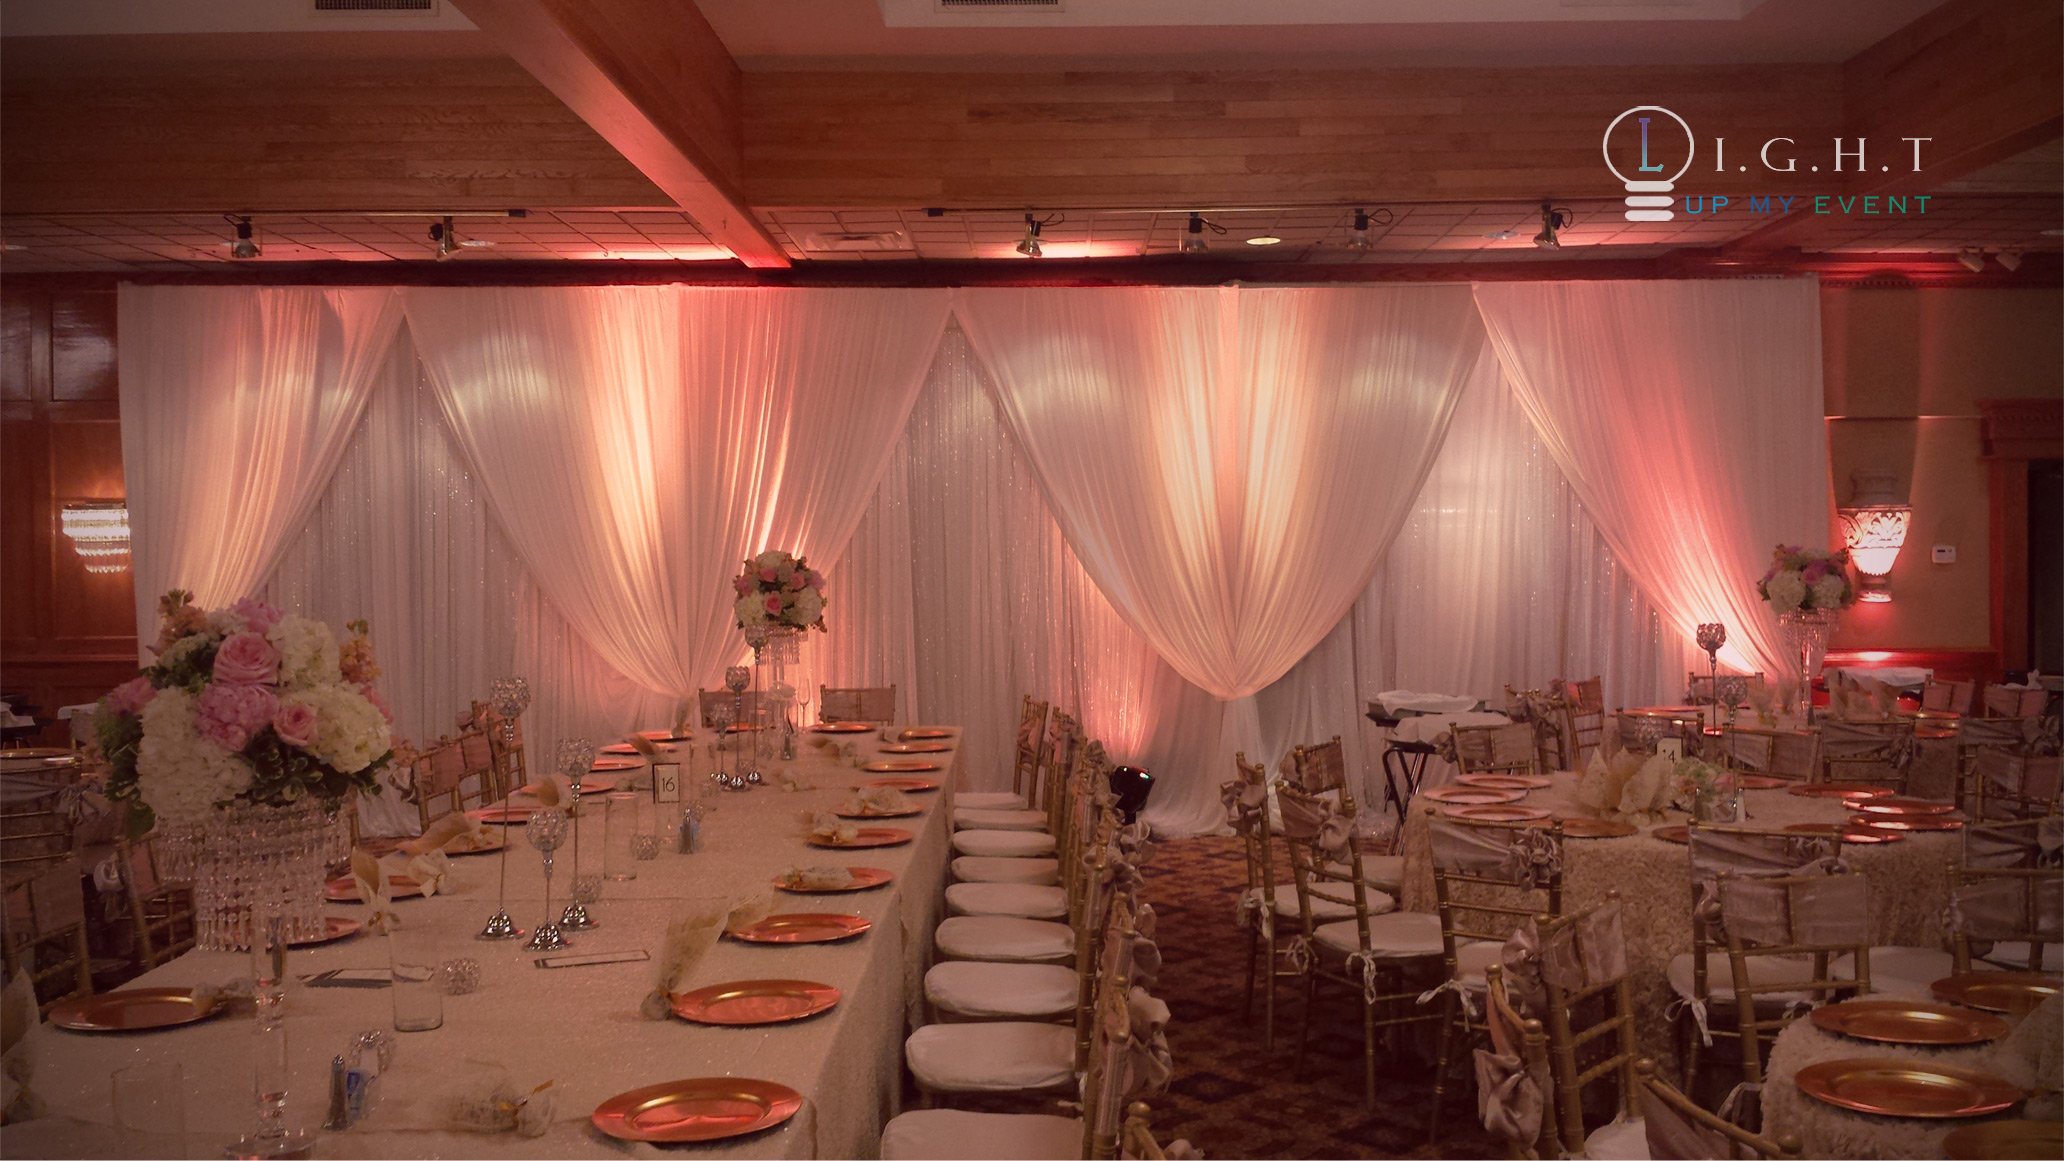 available wedding use also drapes choose decorating blue black the for an variety large rentals a red in music event green drape thedewmedia of pipe so backdrop needs can your you such and as per colors steemit